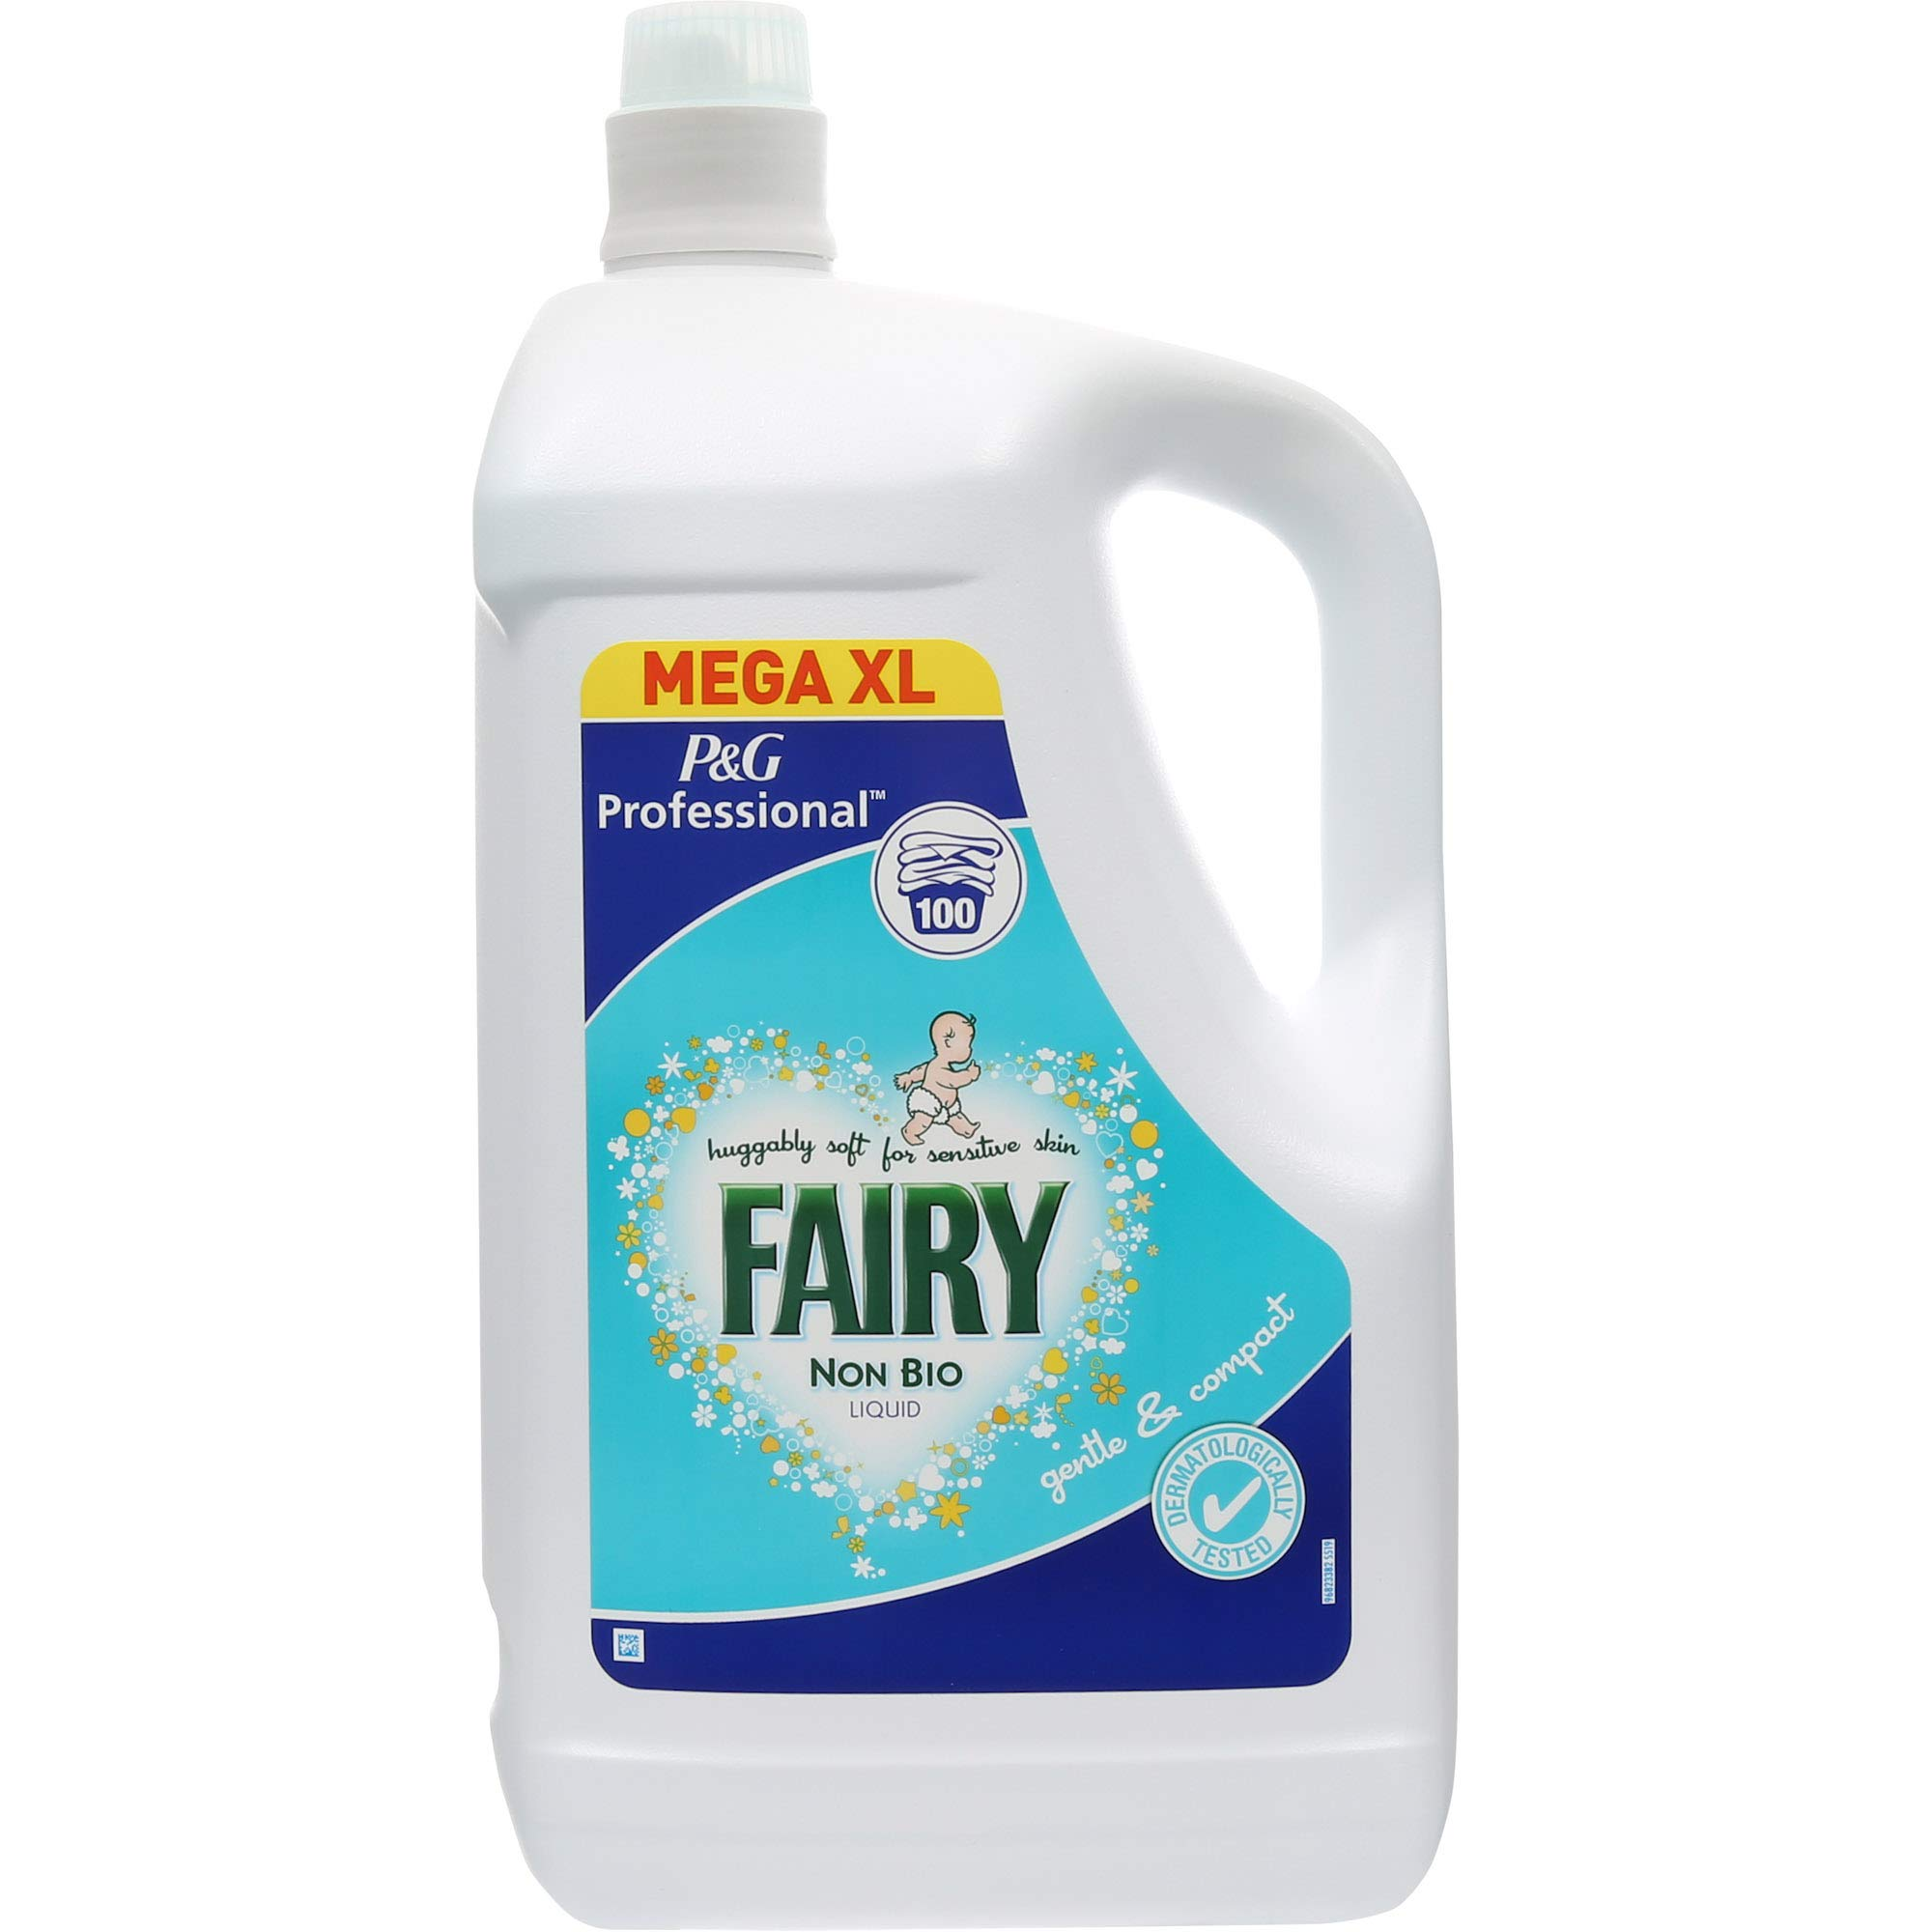 Fairy Non Bio Laundry Washing Liquid P & G Professional 5 Litre 100 Washes by Fairy